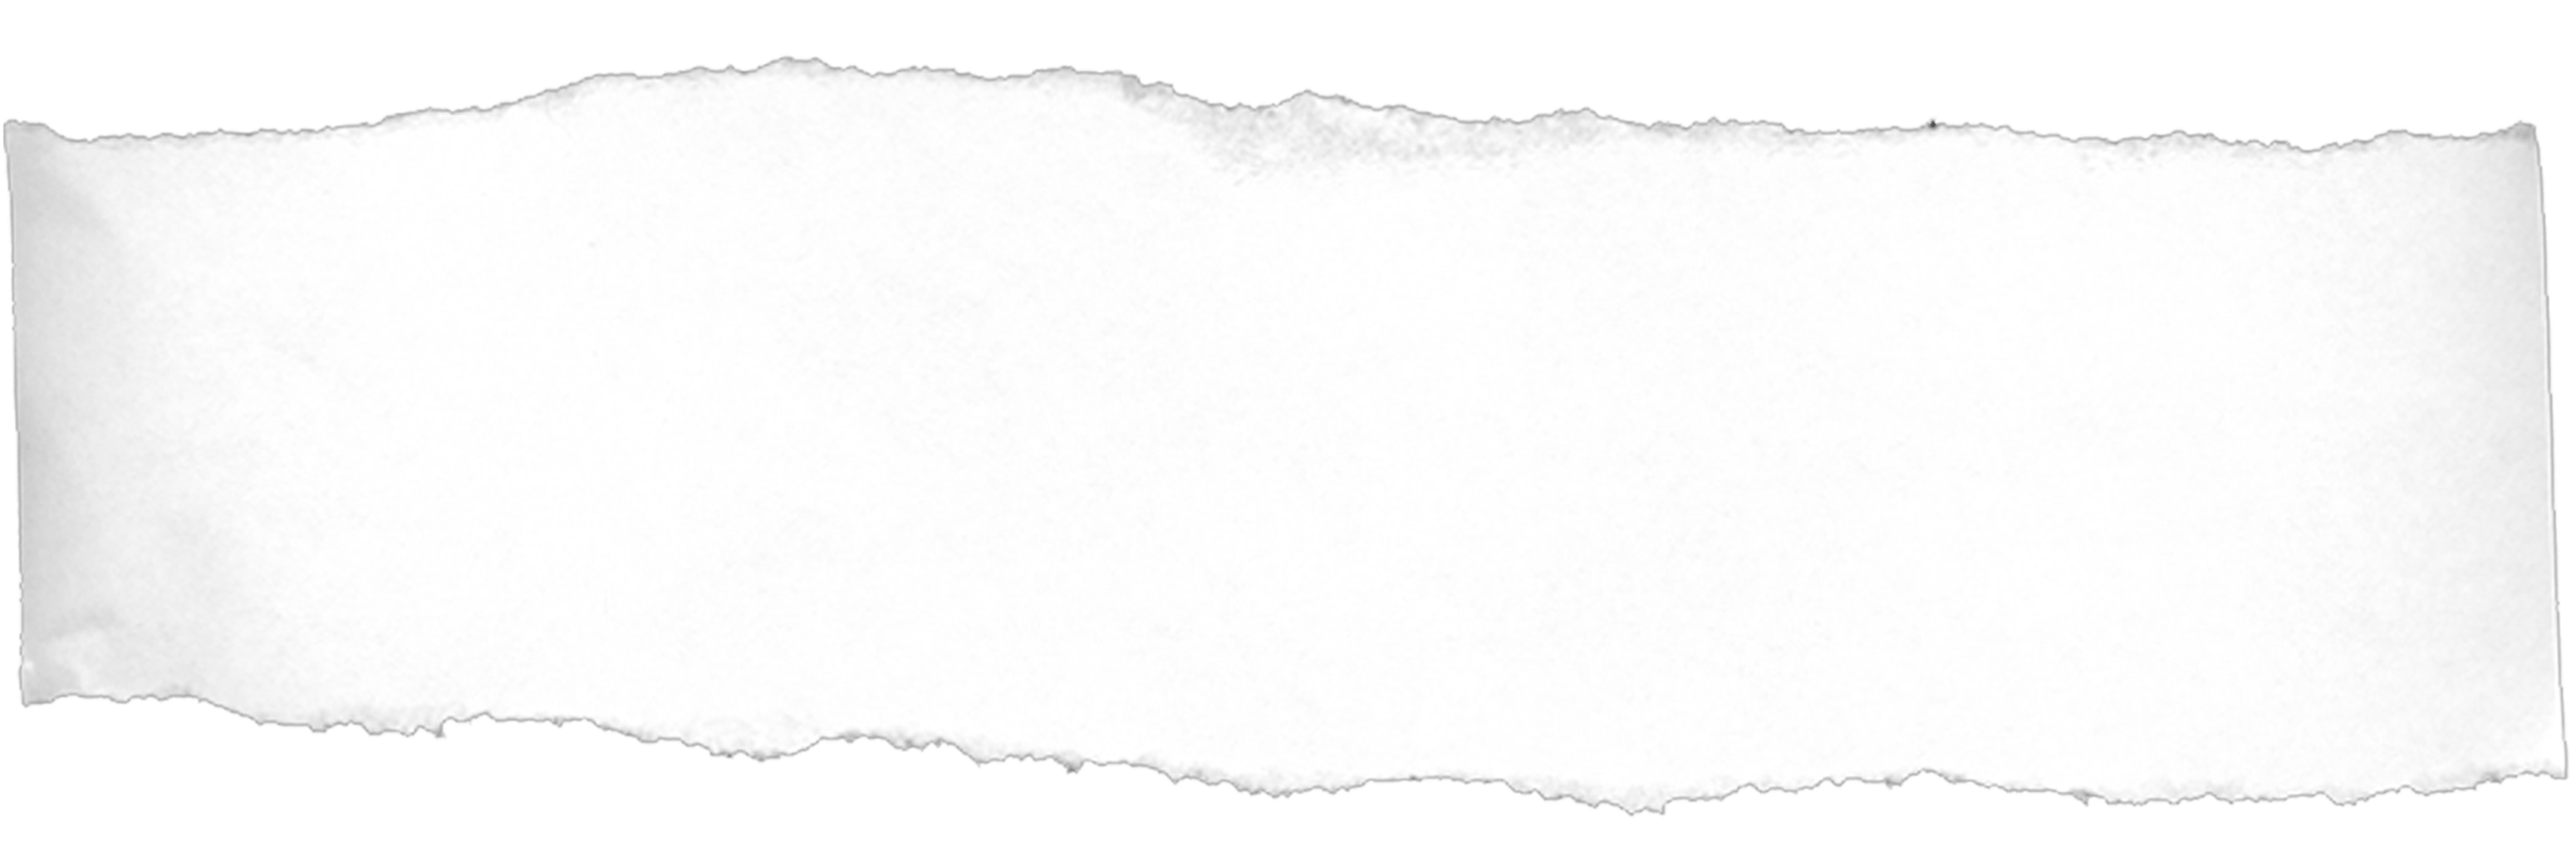 Ripped paper texture clipart vector black and white Torn Paper Png | Free download best Torn Paper Png on ... vector black and white